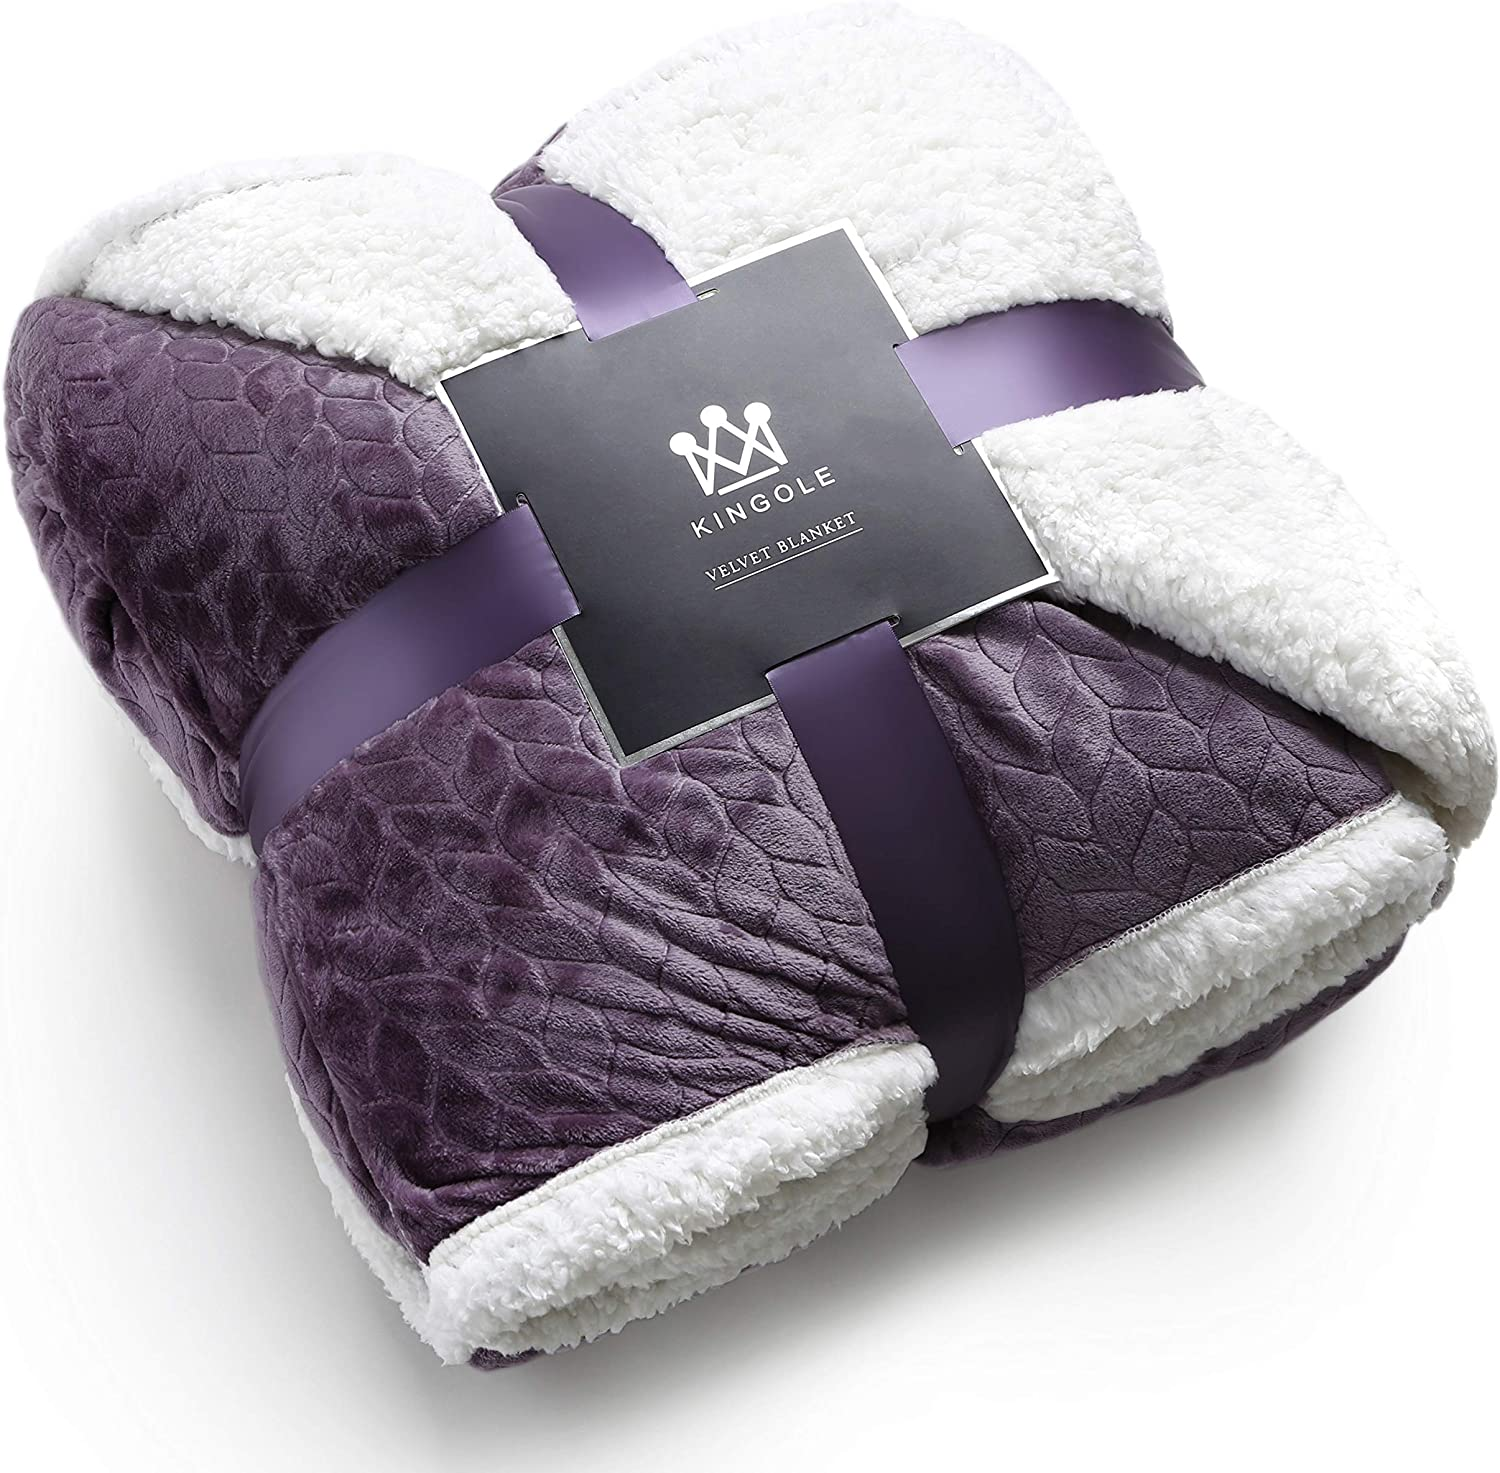 "Kingole Double-Layer Reversible Luxury Sherpa Blanket, Lavender Purple Twin Size Extra Warm Super Soft Cozy Plush for Couch Bed Microfiber 580GSM (66""x90"")"